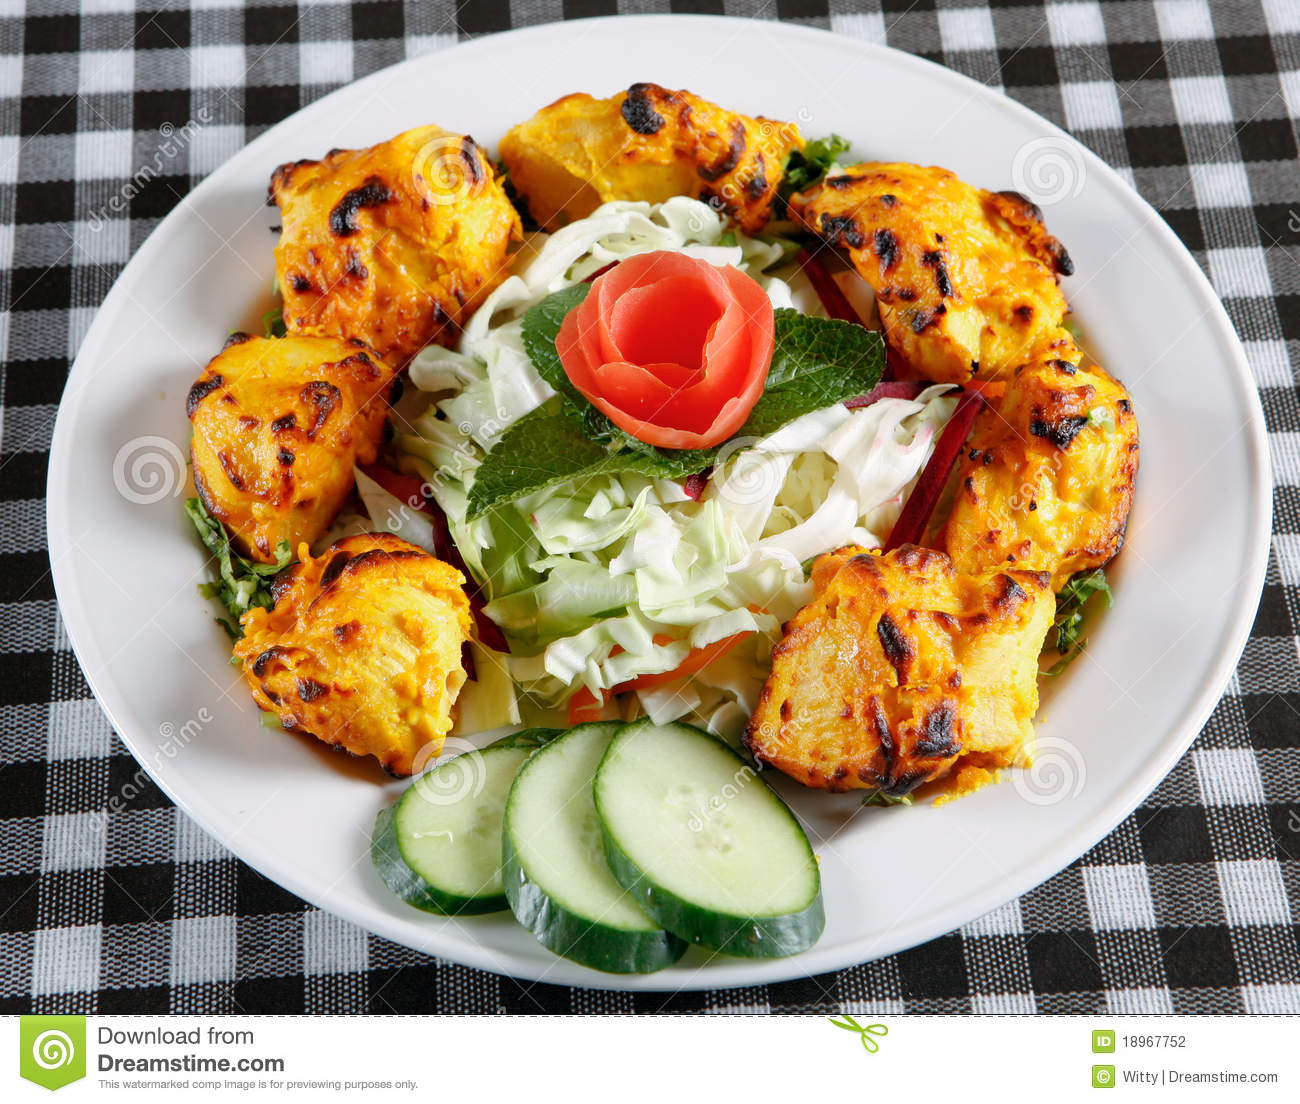 chicken-tikka-salad-plate-18967752.jpg